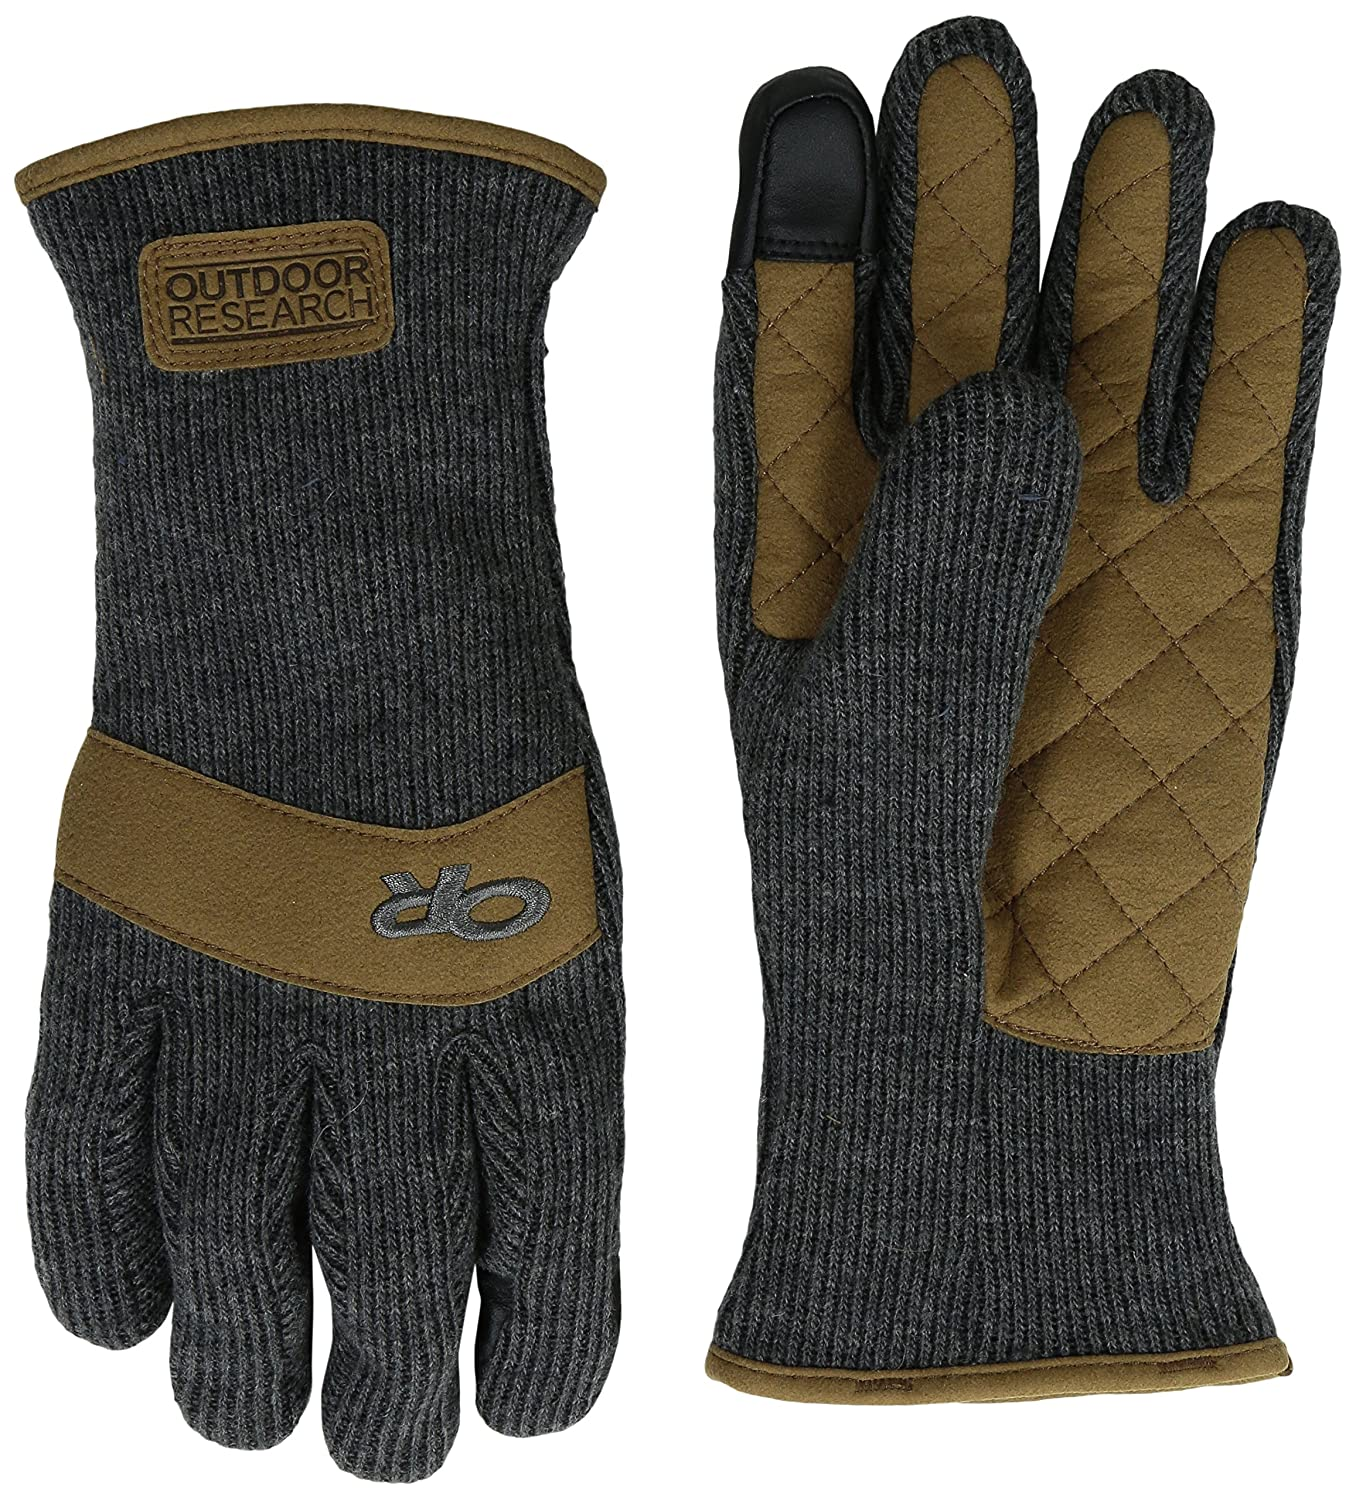 Outdoor Research - Exit Sensor Gloves, charcoal